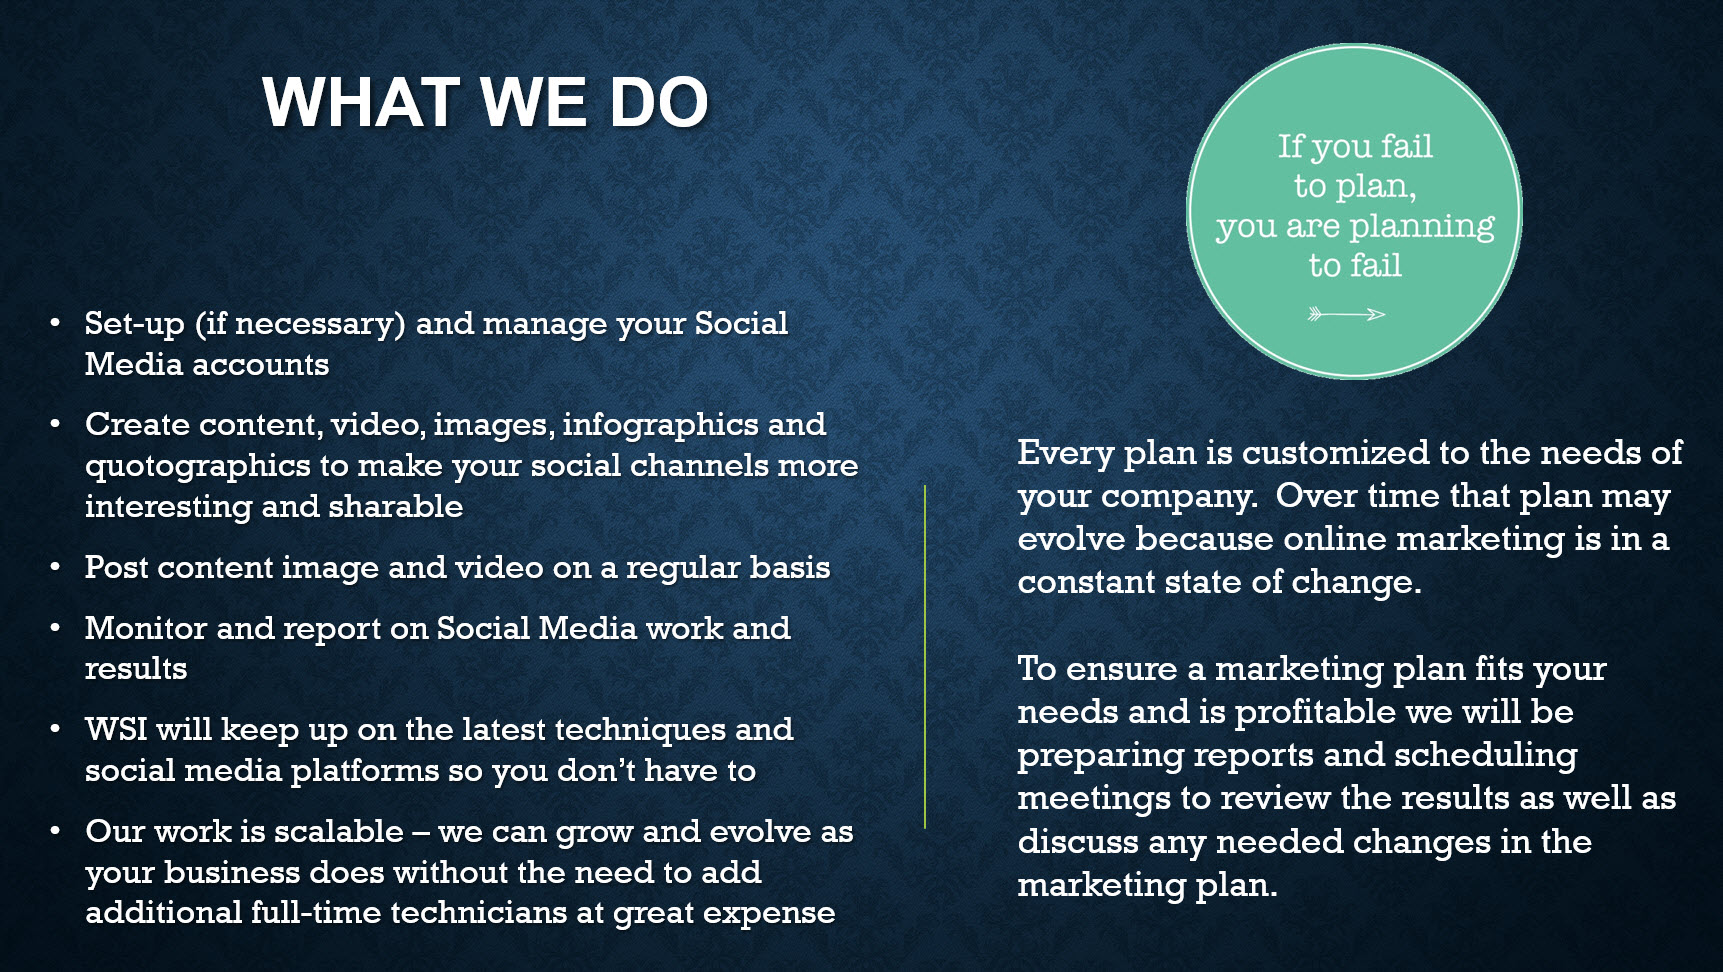 How WSI can help with social media